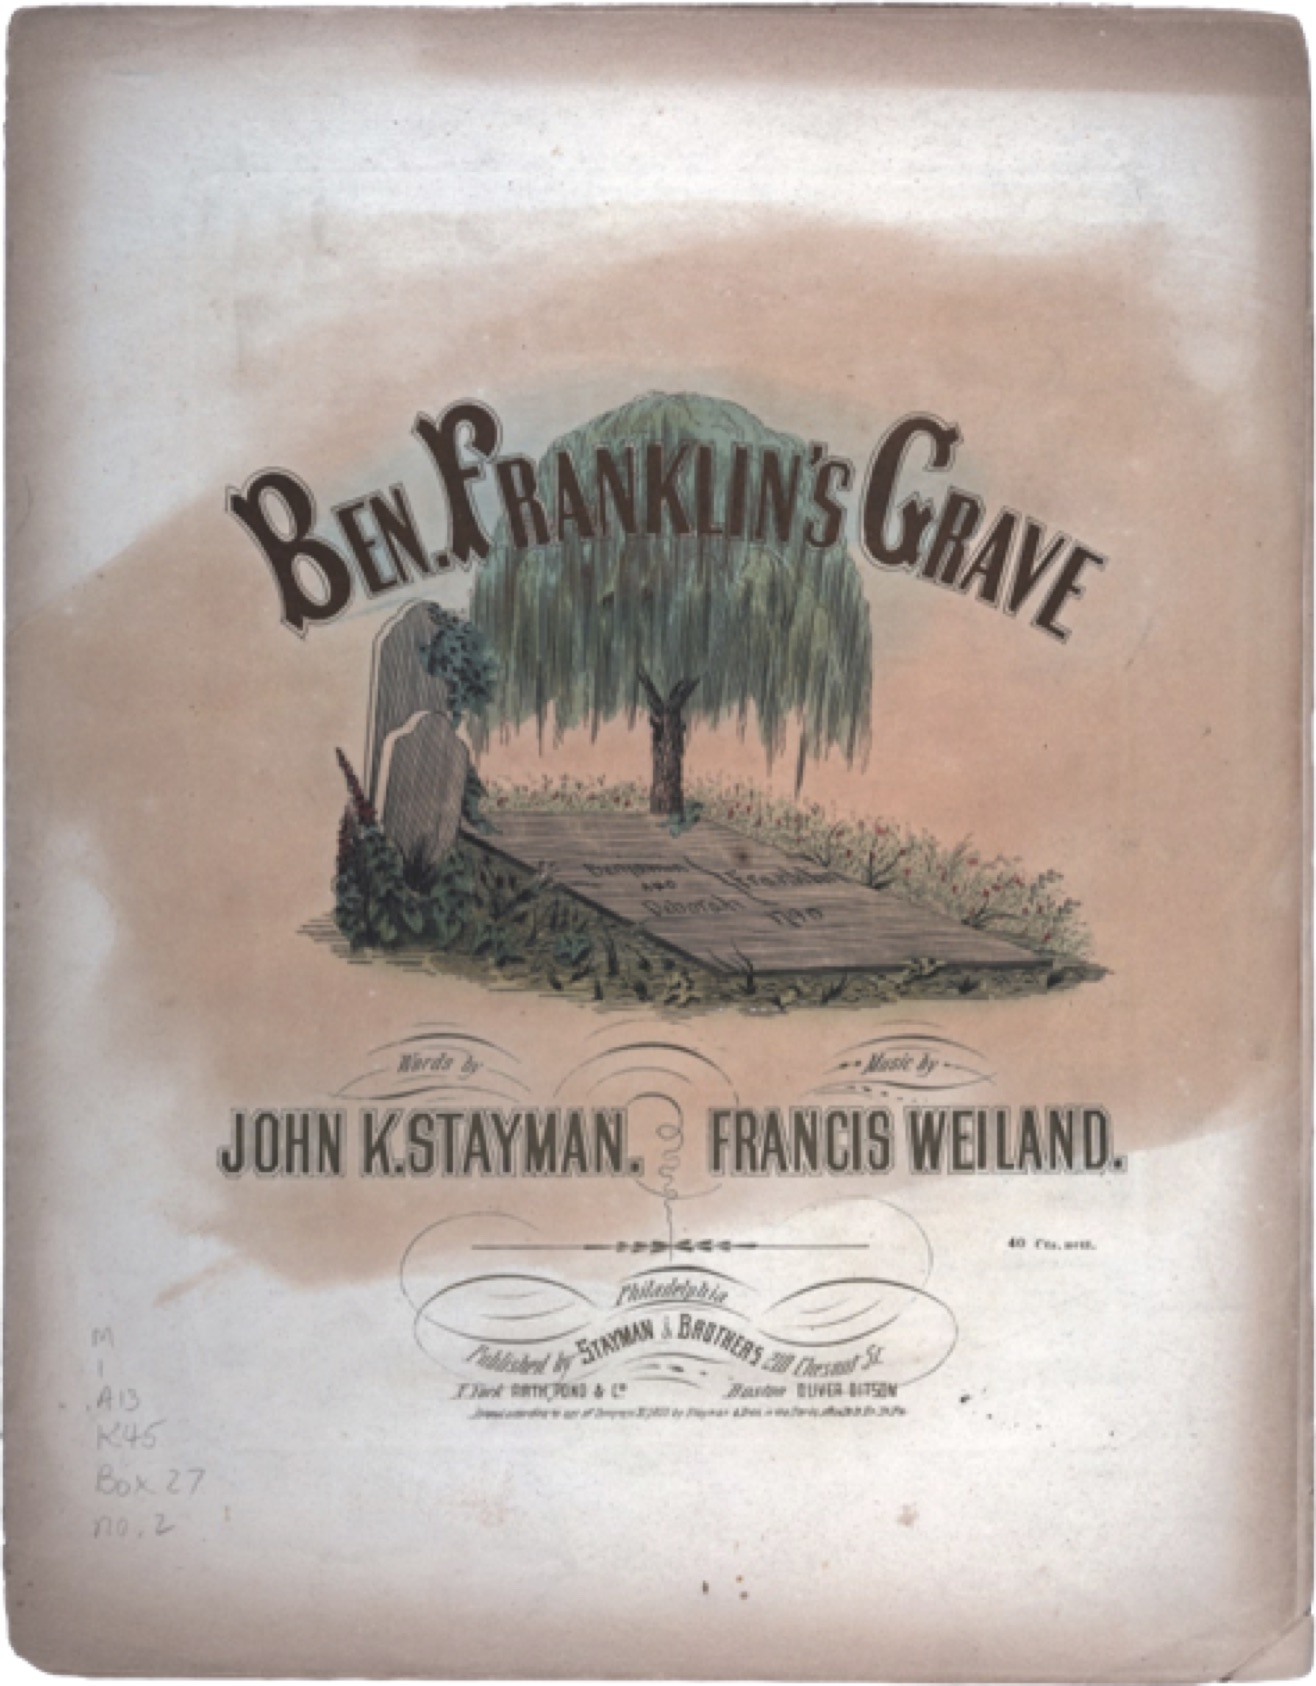 Ben. Franklin's grave, words by John K. Stayman, music by Francis Weiland, Keffer Collection of Sheet Music, Folio M1.A13 K4 Box 27, no. 2